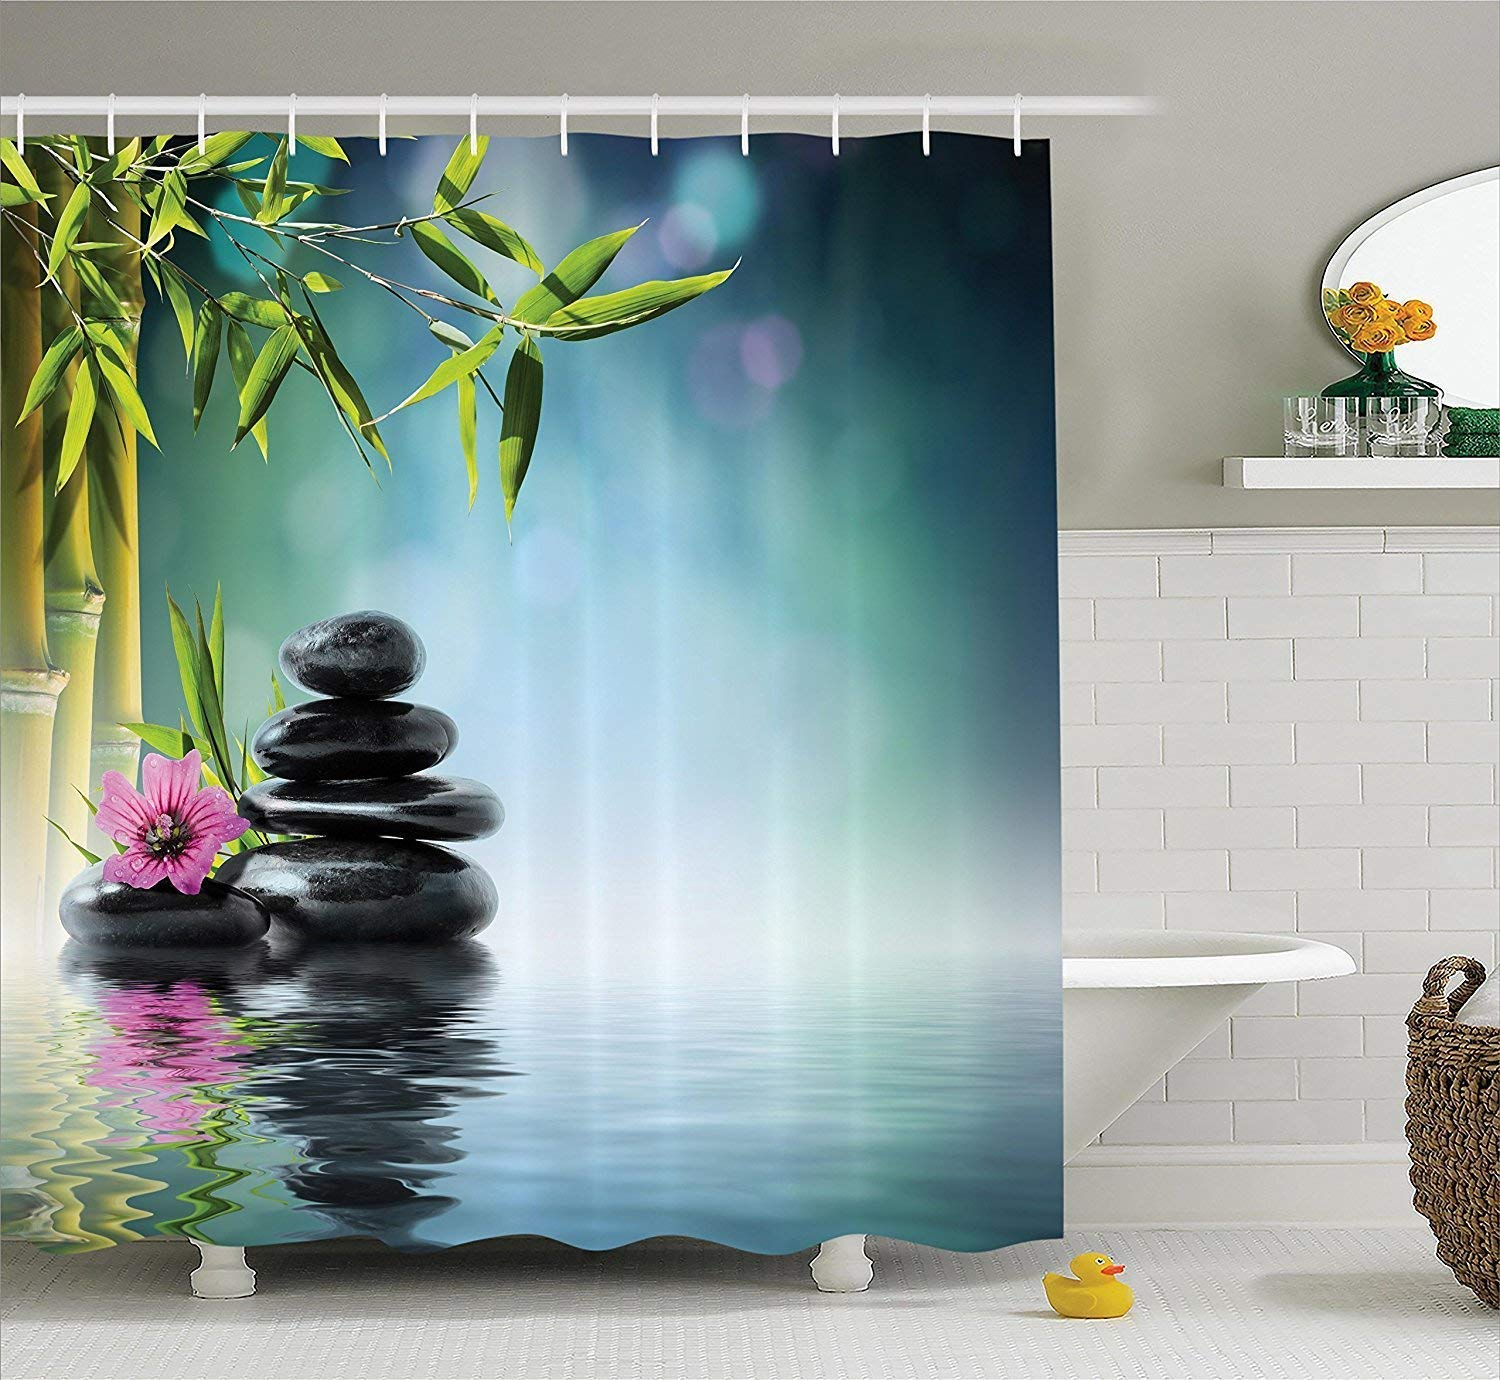 werert SPA Decor Shower Curtain Hibiscus Set, Tower Stone and Hibiscus Curtain with Bamboo On The Water Blurred Background,72 X 72 892292